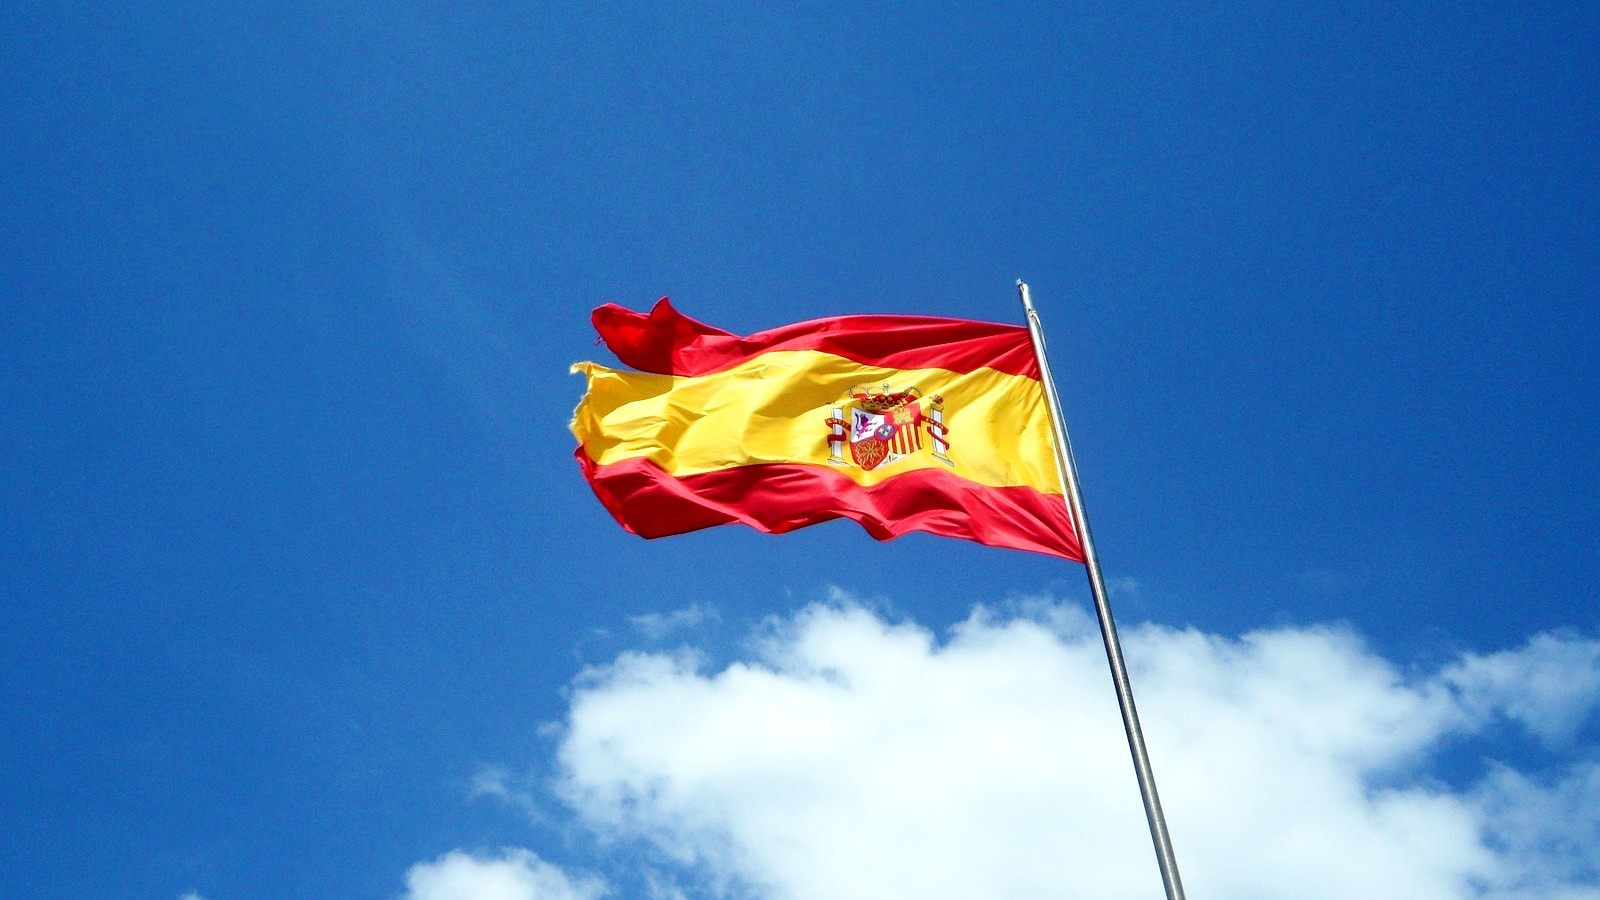 The Ministry of Labor and Social Economy of Spain hit by a cyber attack